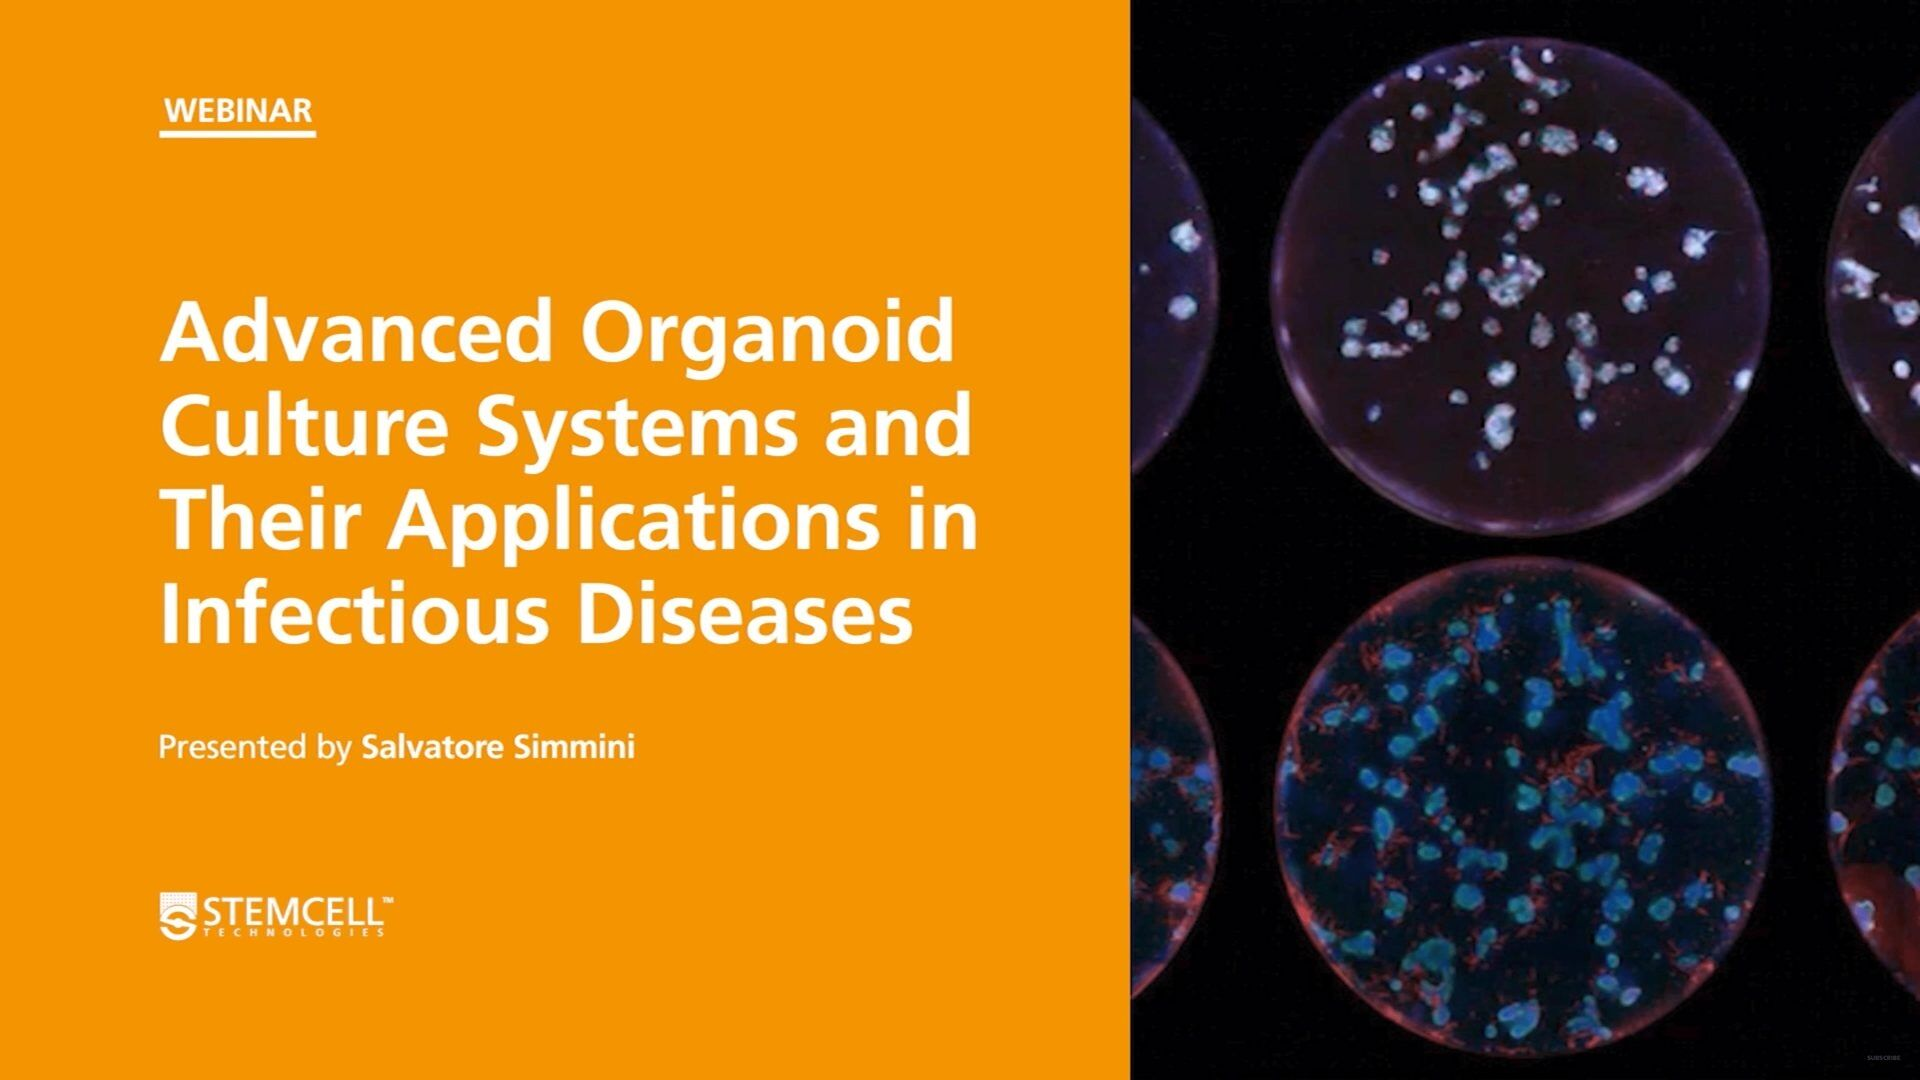 Organoid Mini-Symposium: Advanced Organoid Culture Systems and Their Applications in Infectious Diseases